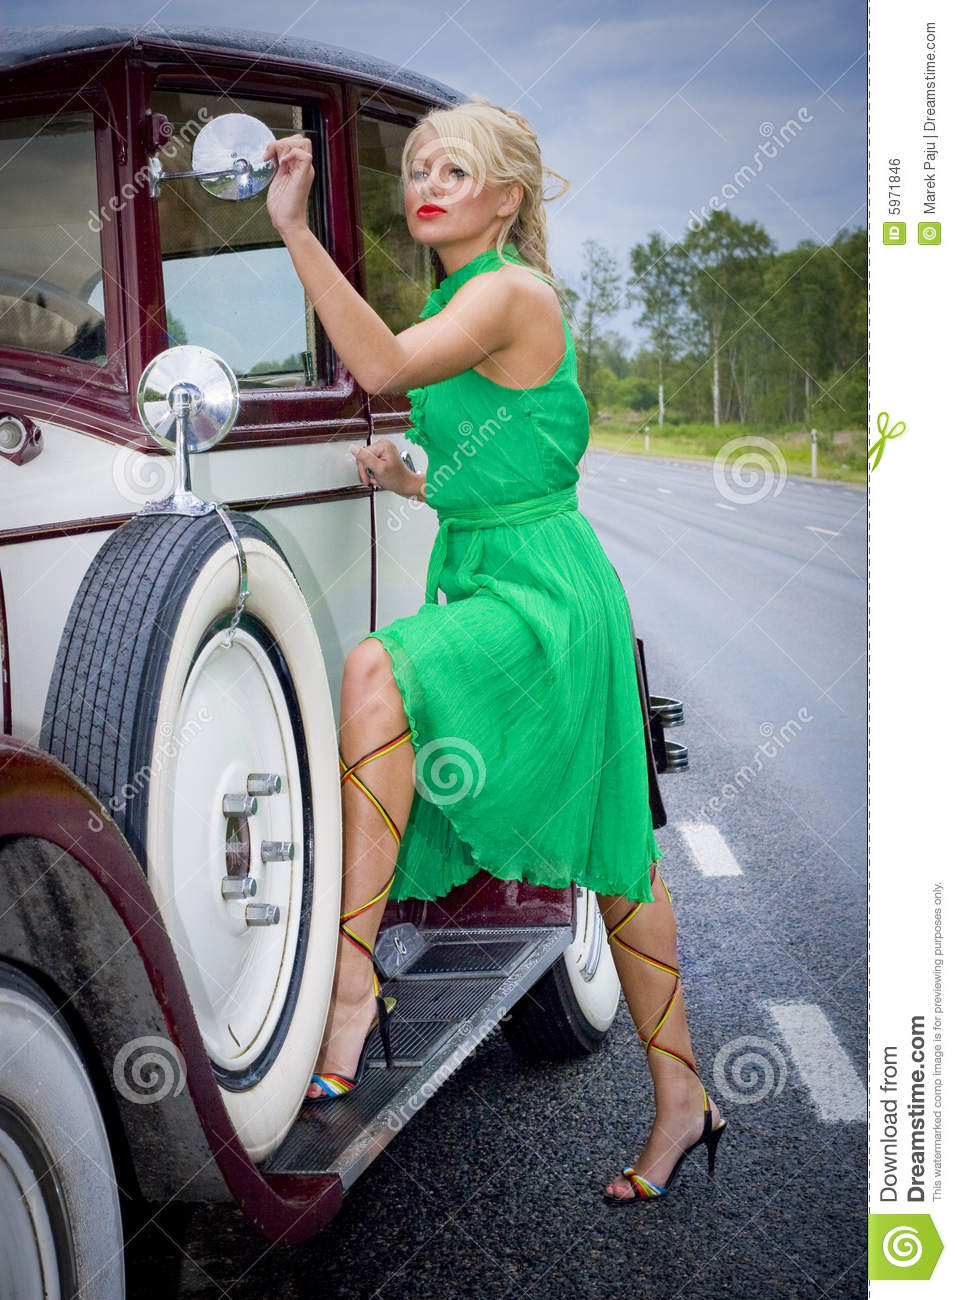 Woman And Vintage Car Stock Photo Image Of Glamorous